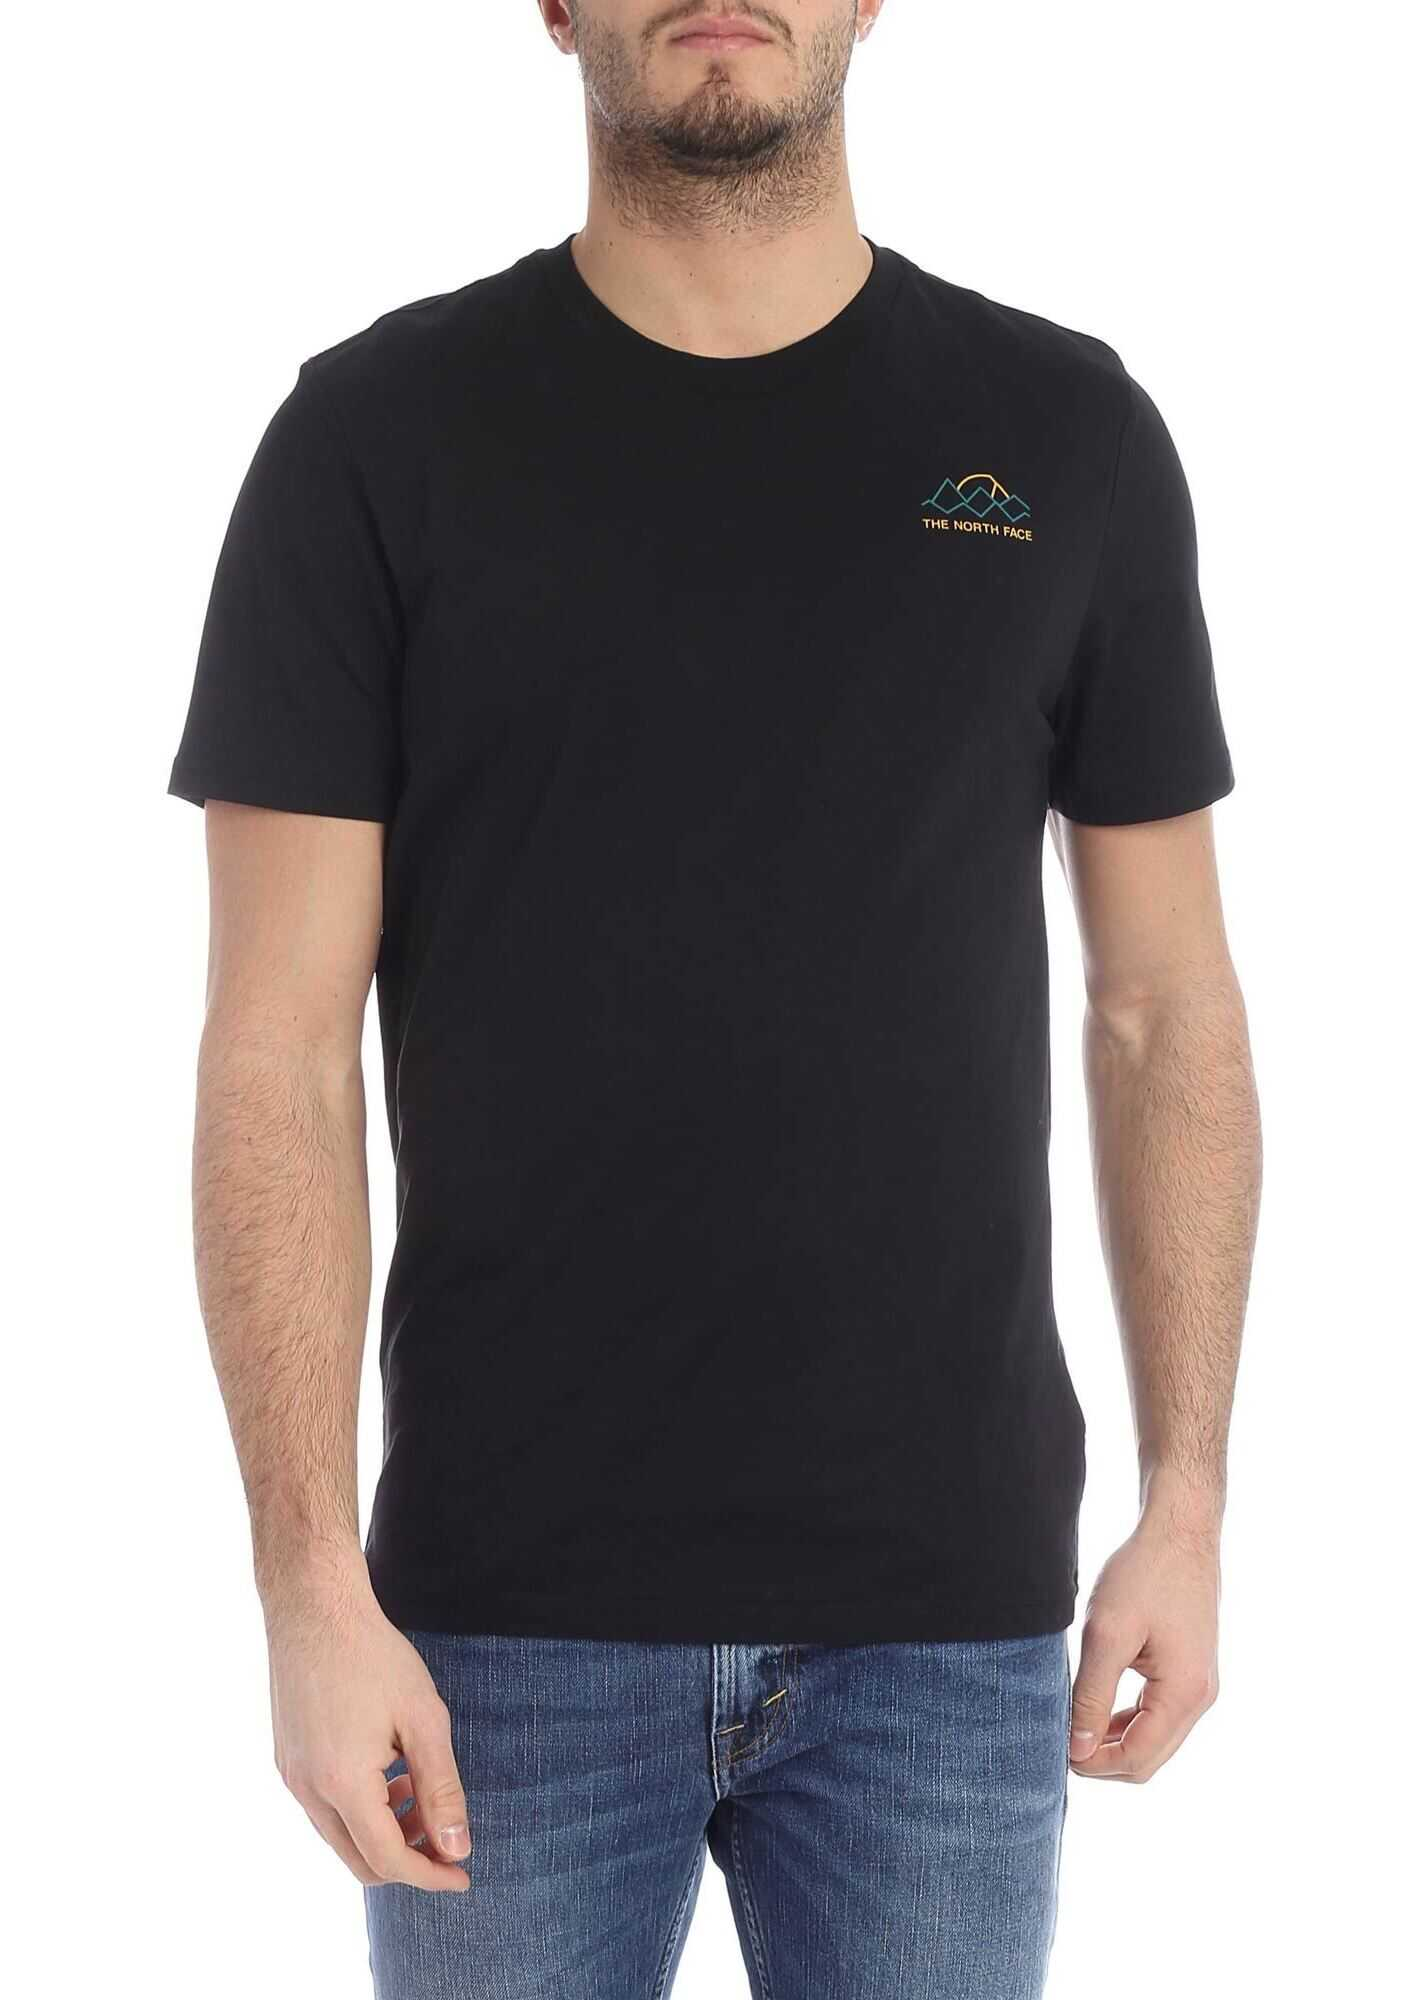 Black T-Shirt With The North Face Logo